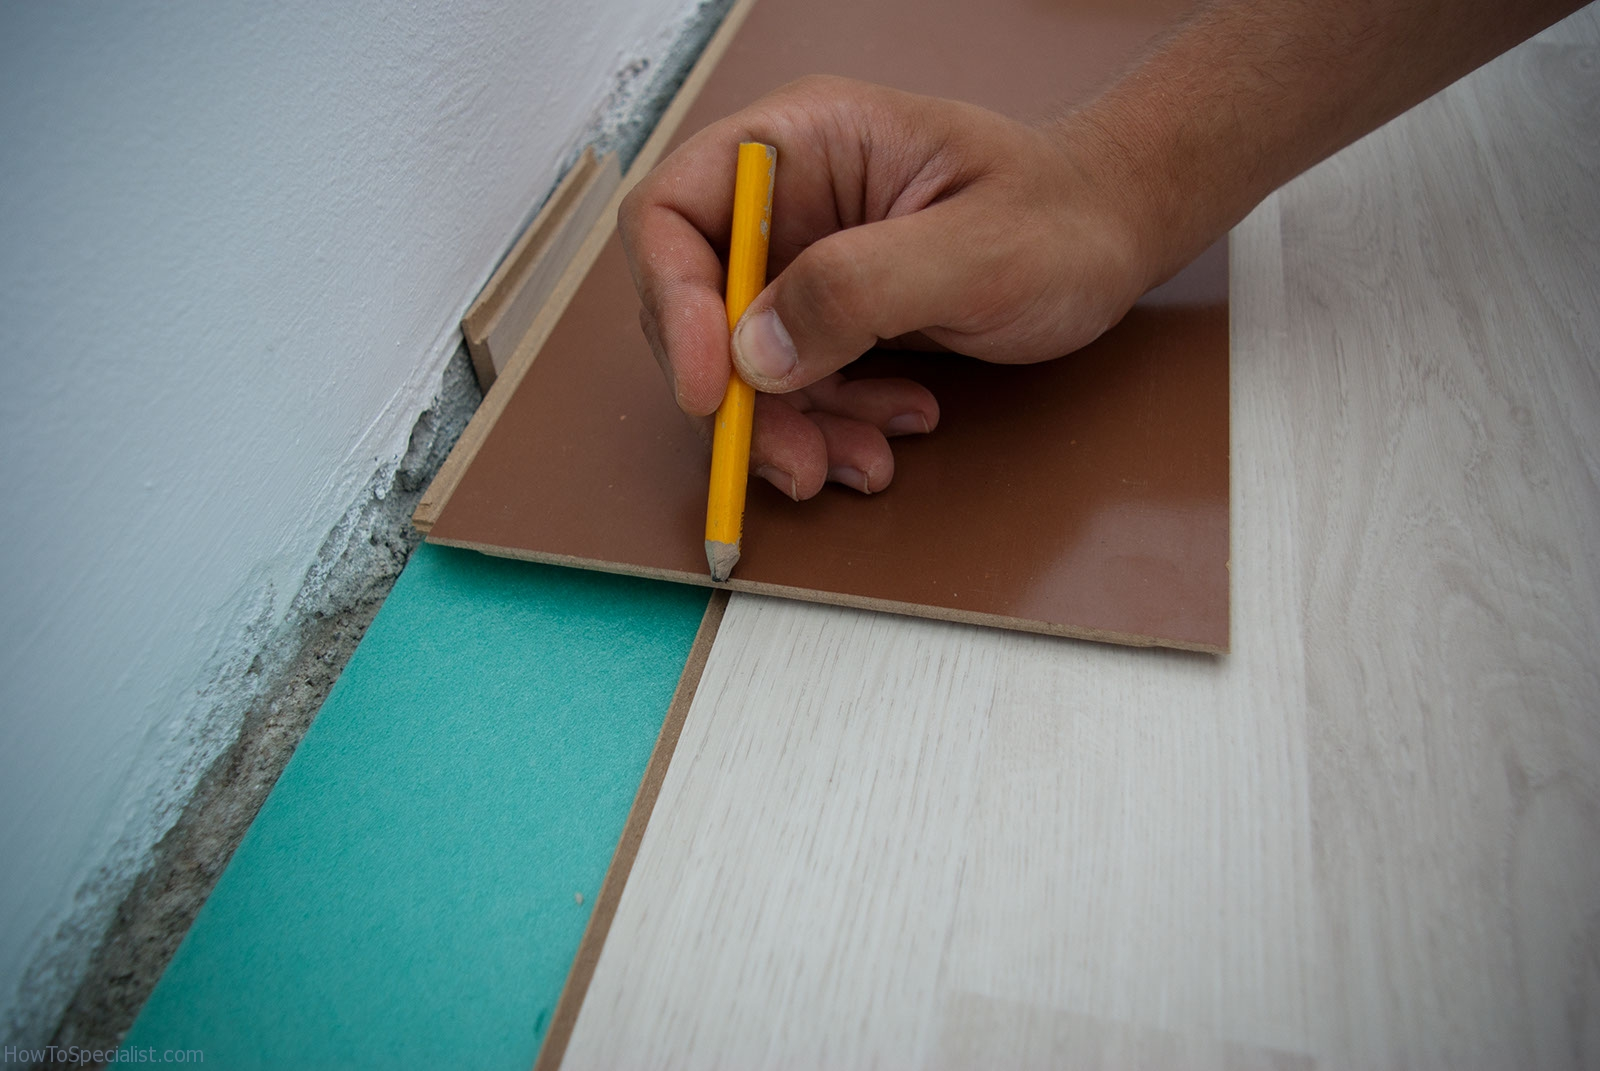 How To Cut Laminate Flooring Lengthwise, What Do I Need To Cut Laminate Flooring